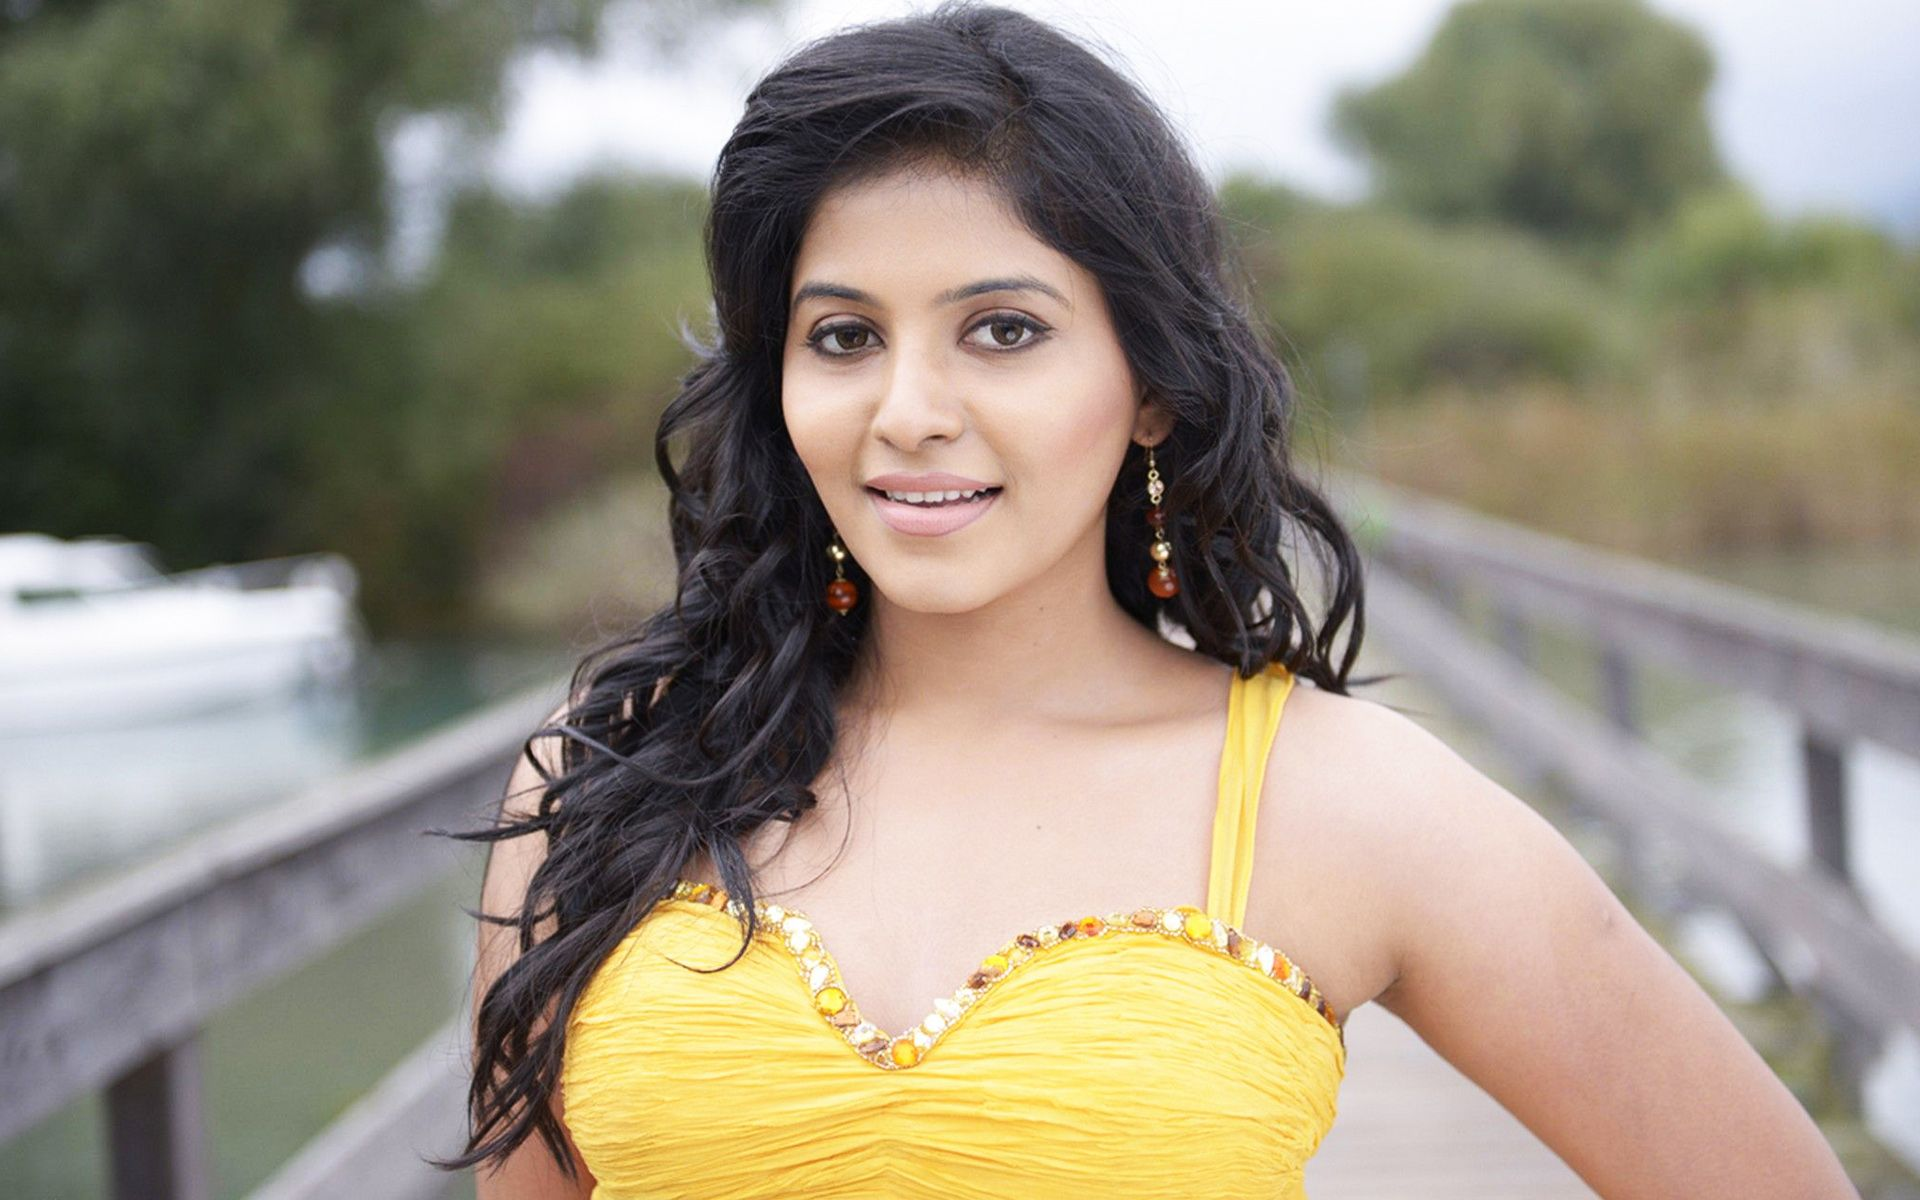 download anjali wallpaper hd widescreen wallpaper from the above